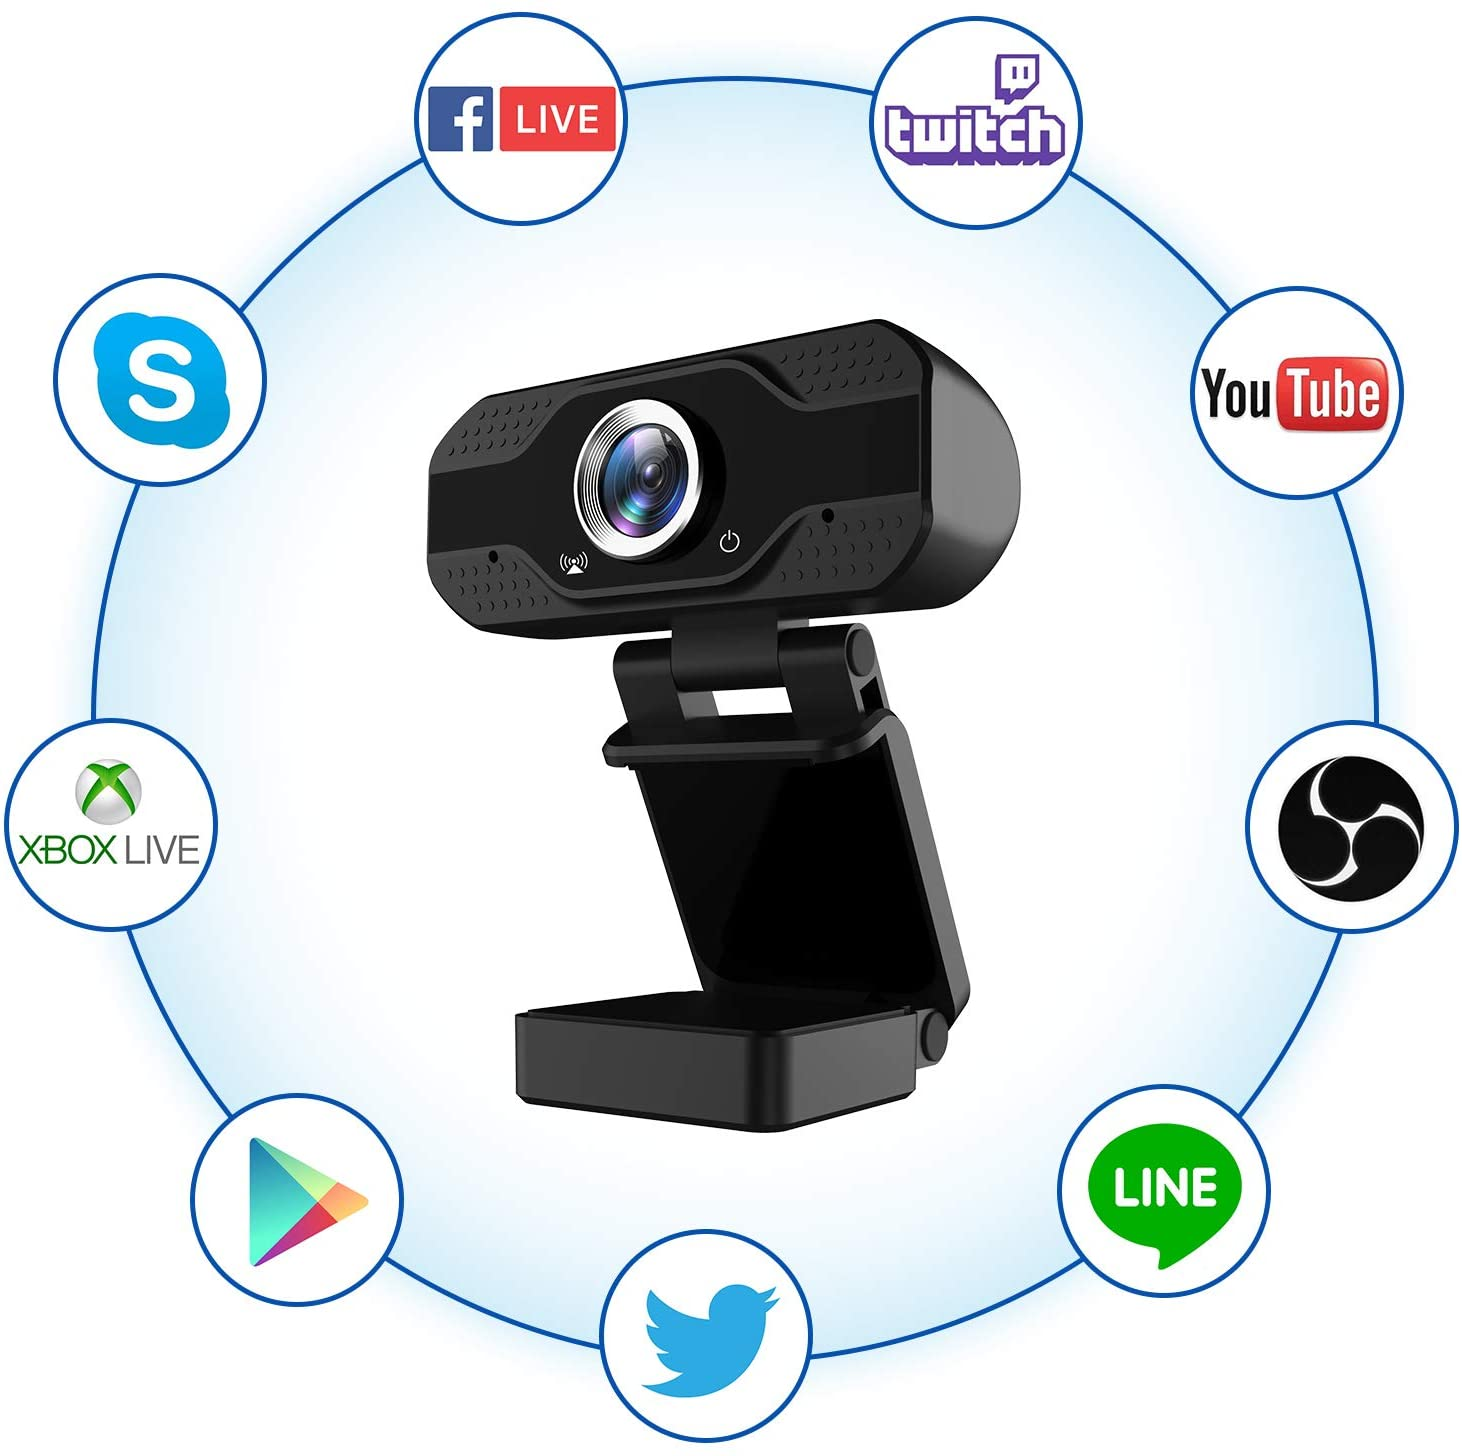 1080P Full HD Webcam with Microphone, USB Web Camera Streaming Computer Camera for Windows Mac PC,120 Degrees Wide-Angle 30fps